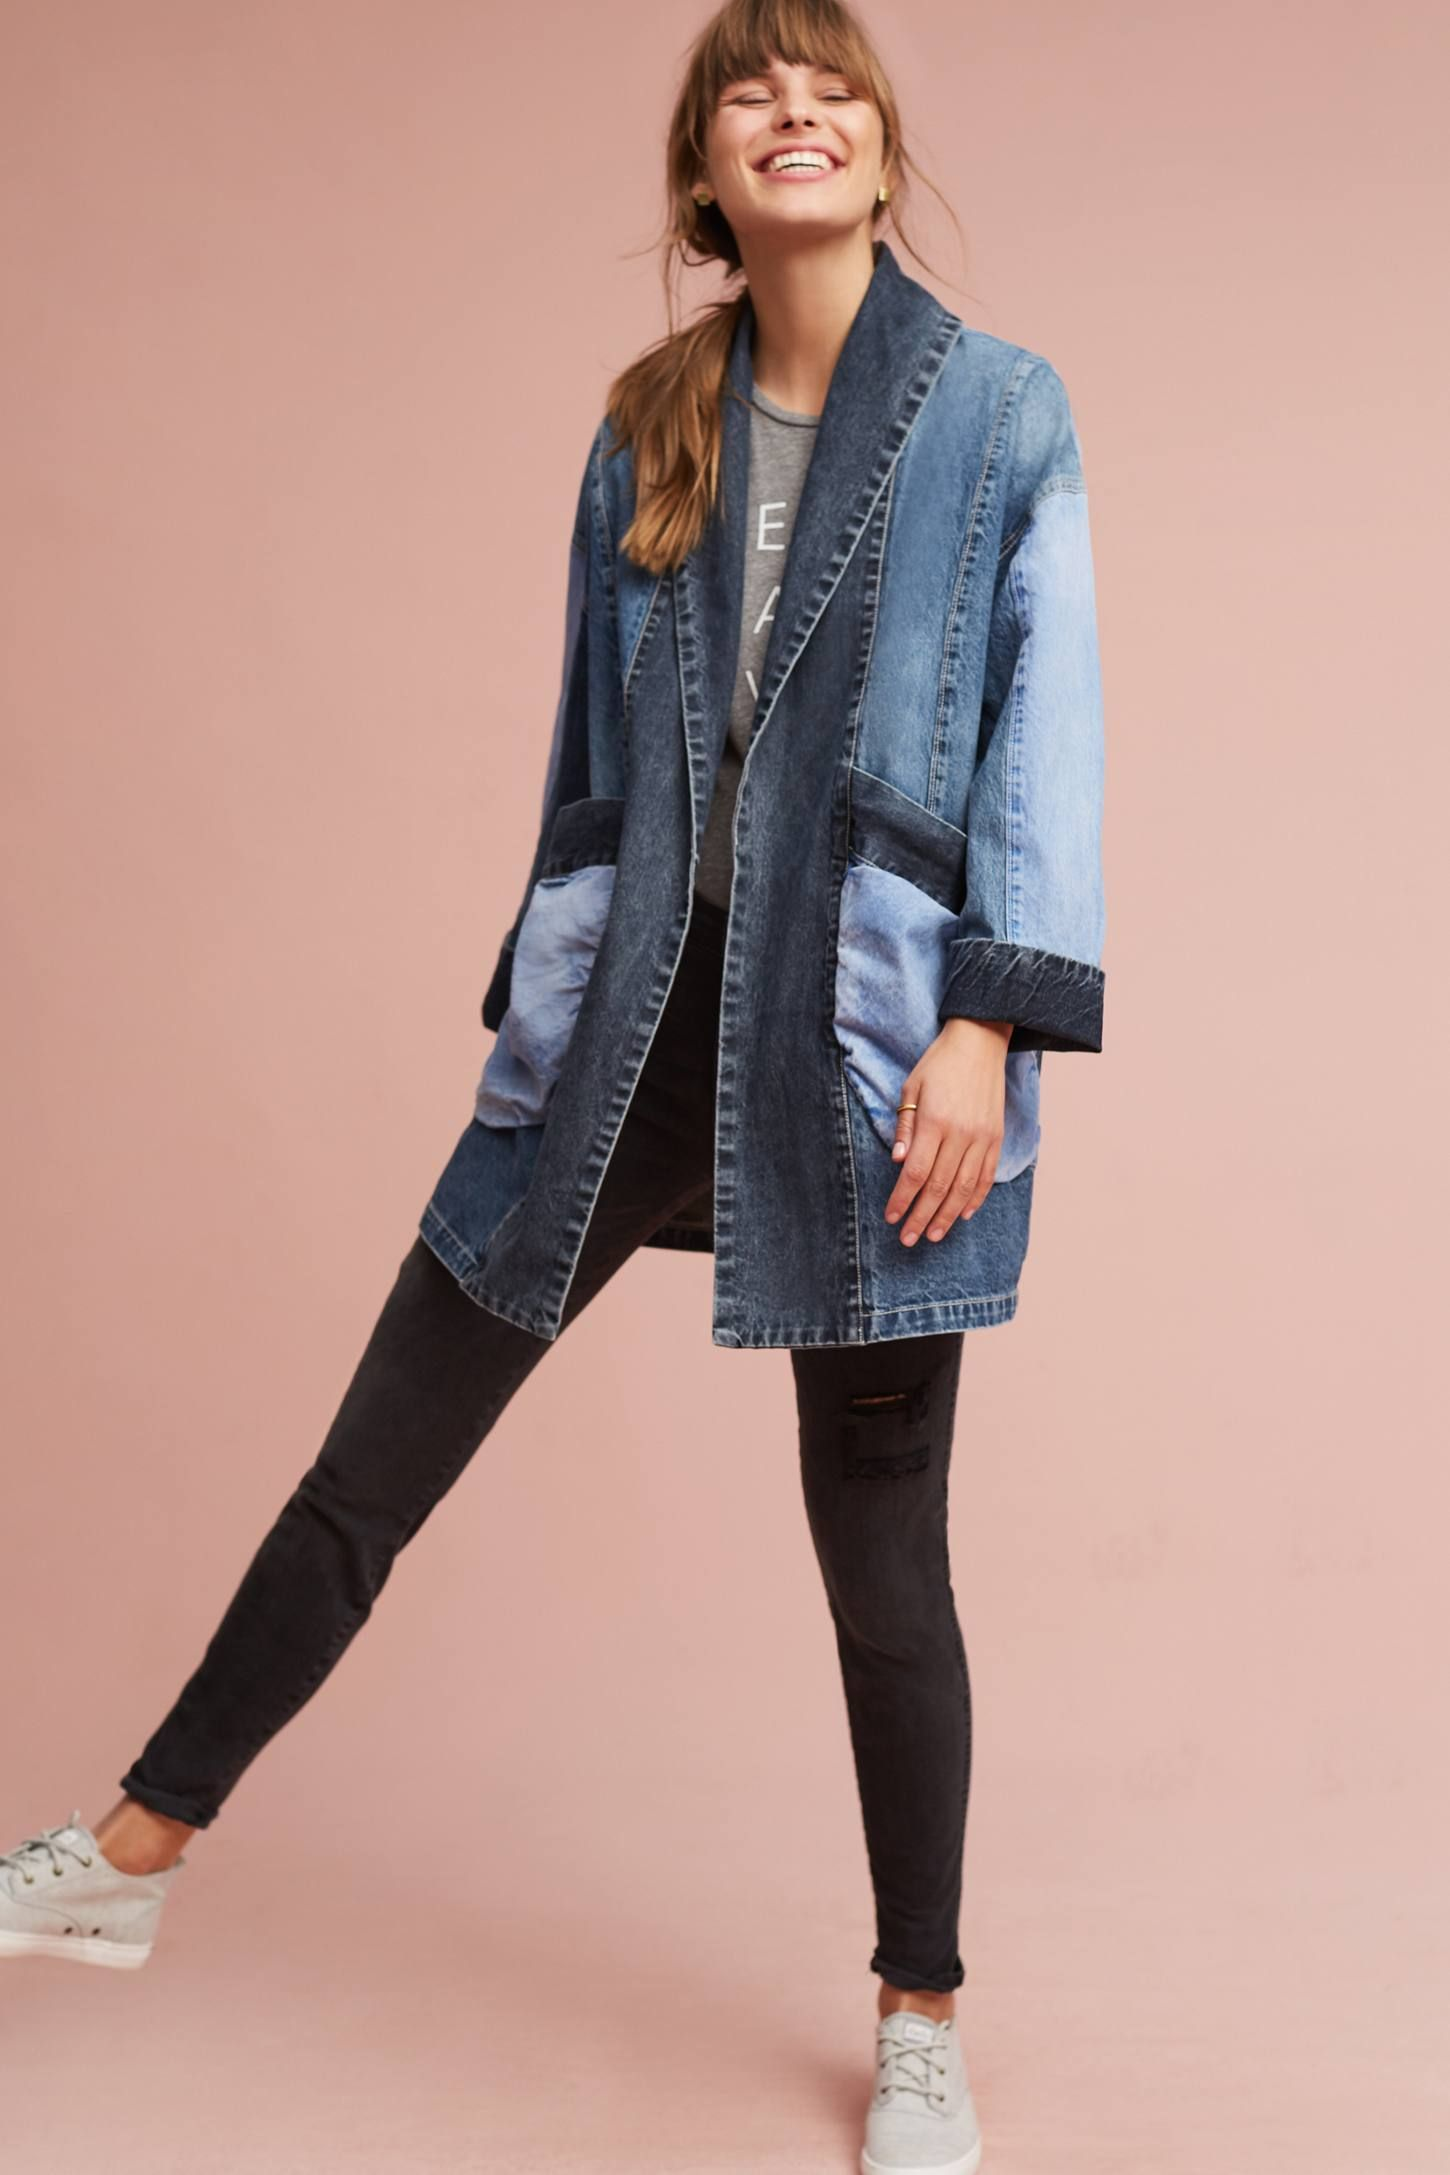 f9f127fe1f64 Shop the Pilcro Jadira Denim Kimono Jacket and more Anthropologie at  Anthropologie today. Read customer reviews